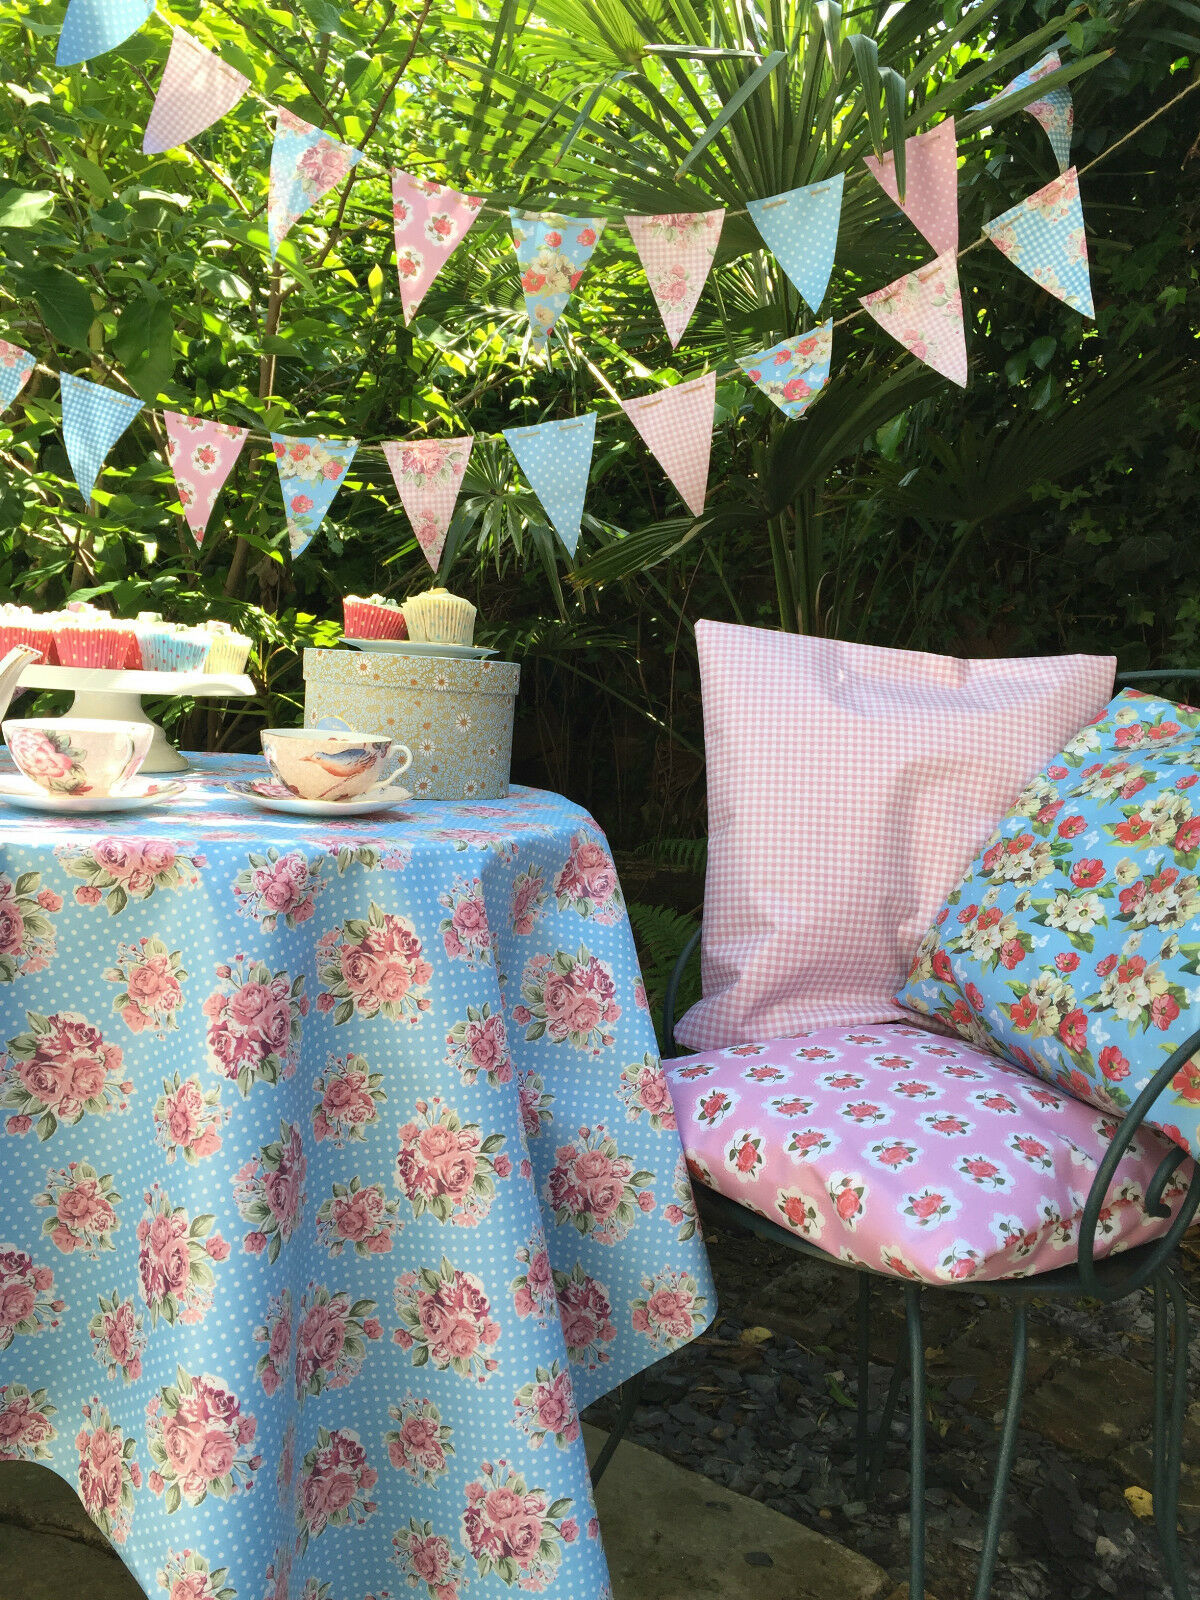 Vintage 100% WATERPROOF OUTDOOR PVC COATED GARDEN BENCH BENCH BENCH SEAT CUSHIONS & BUNTING 84ed9f